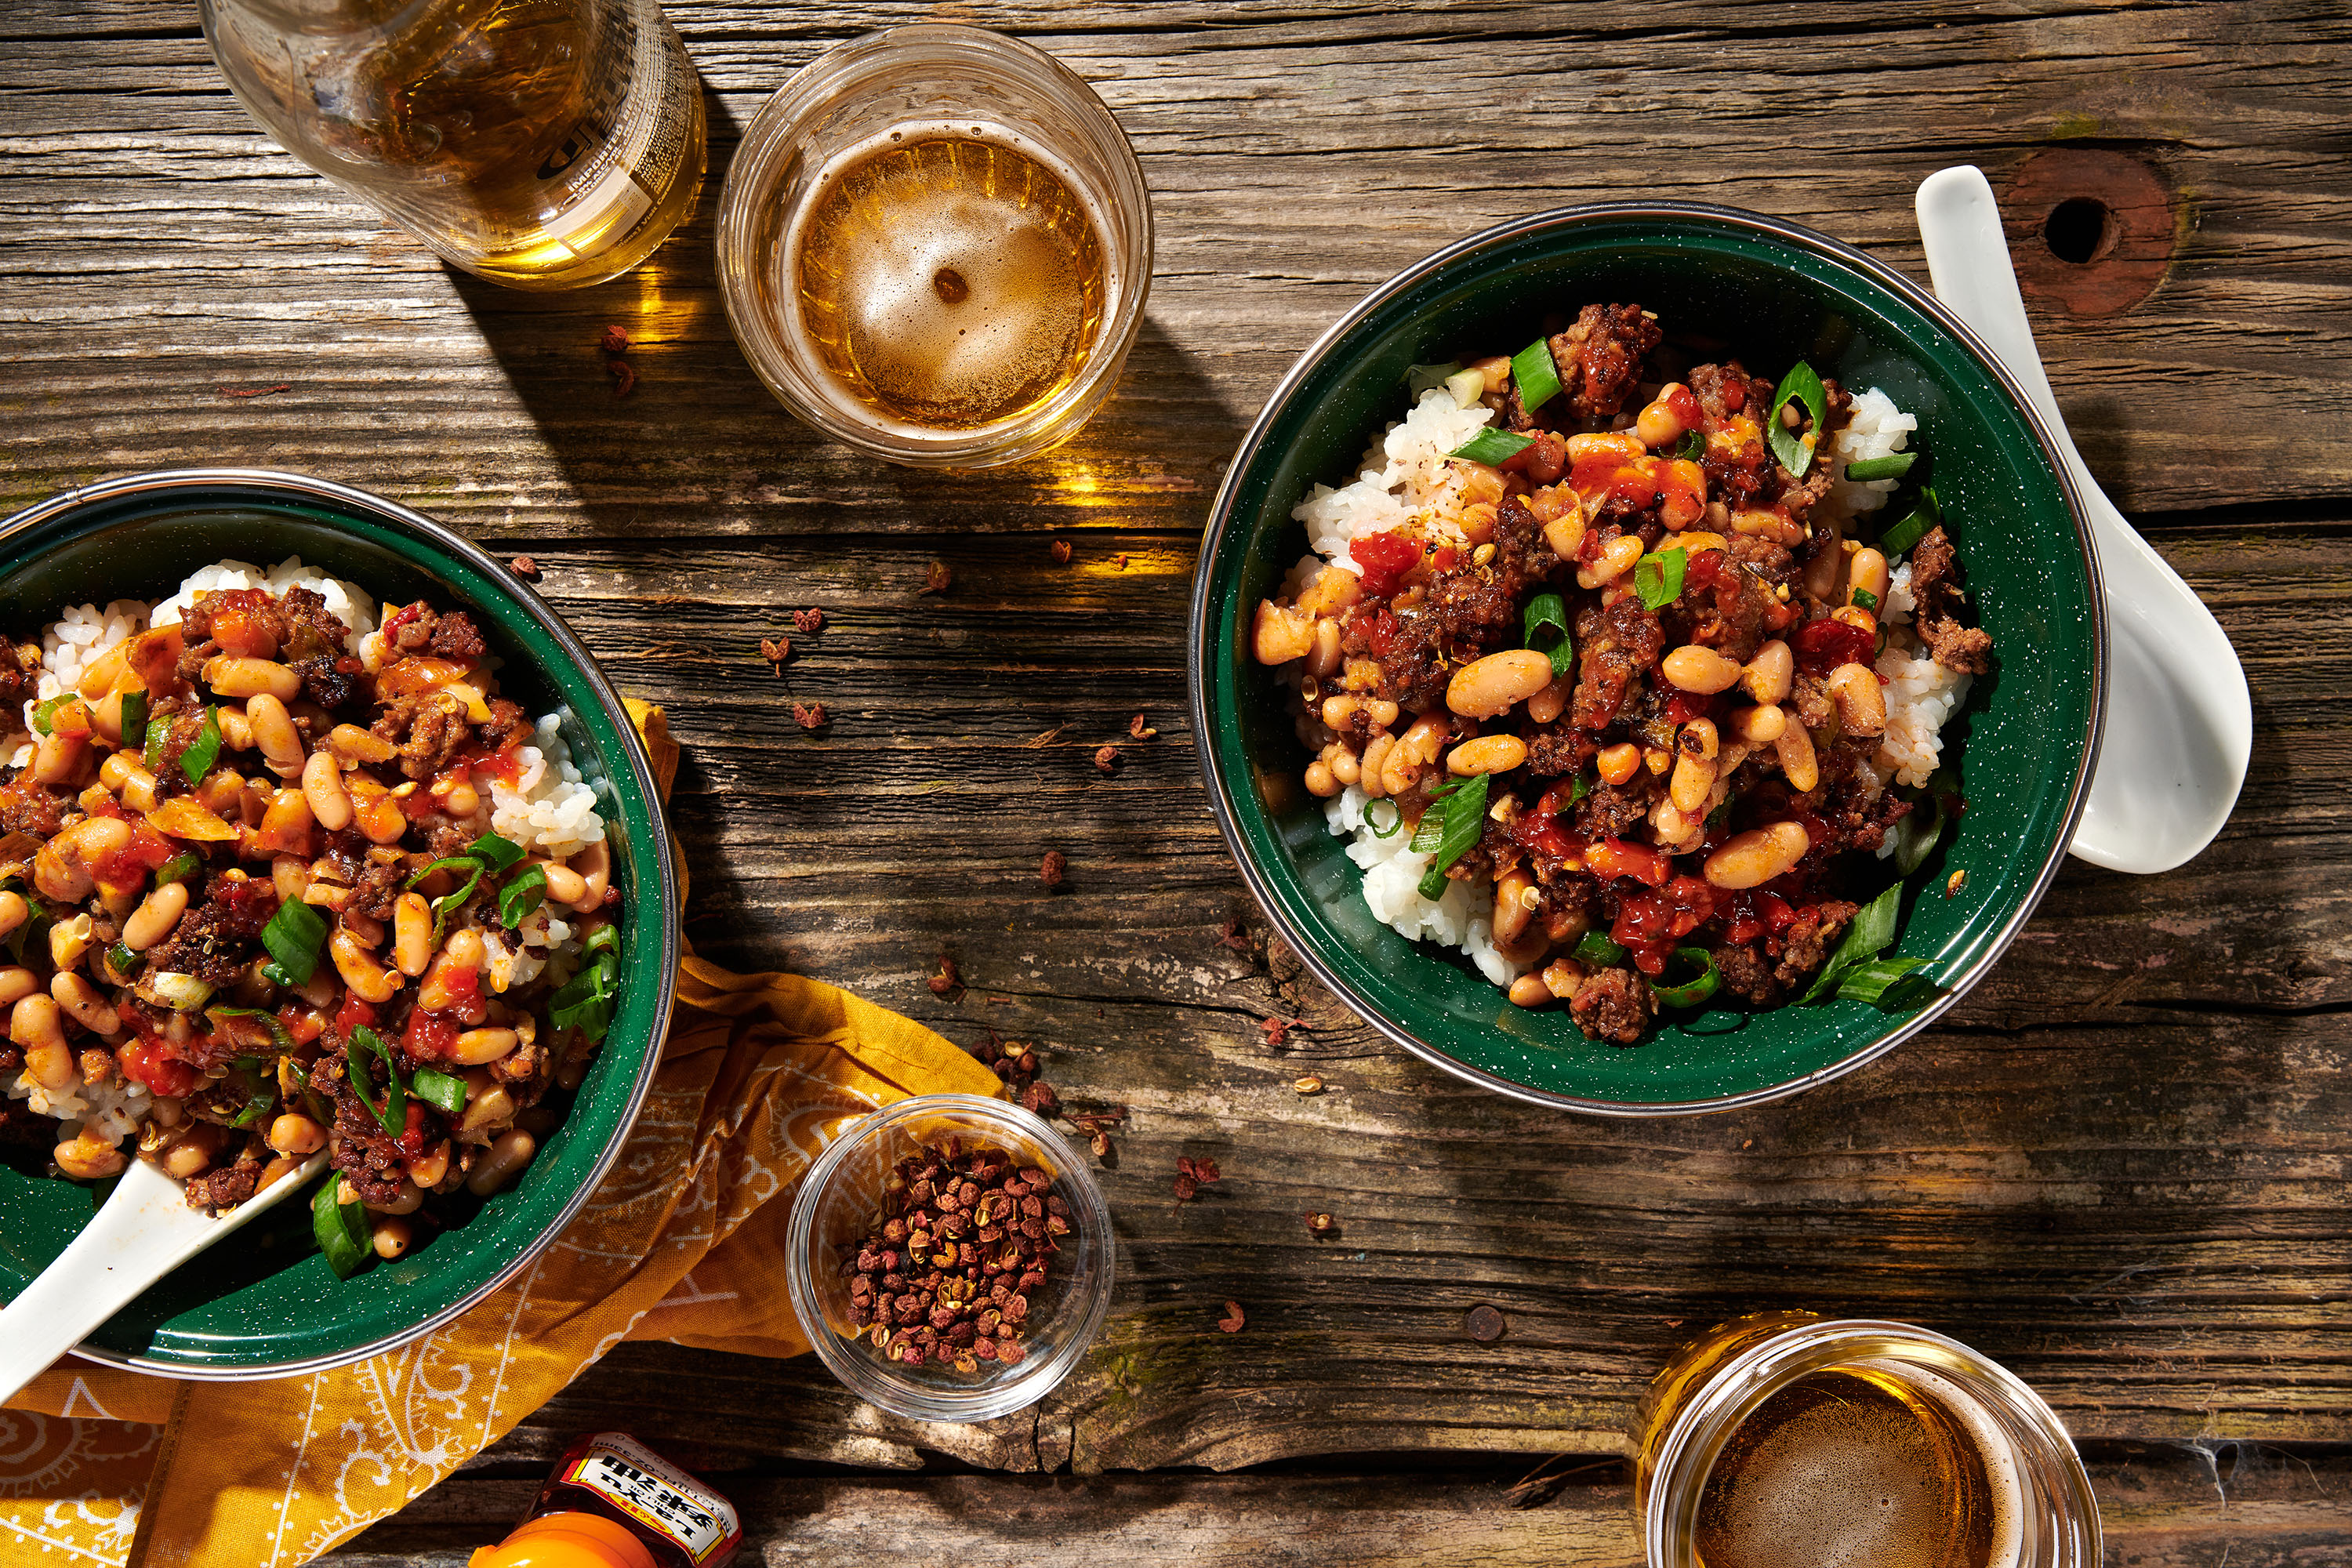 Two bowls filled with mapo beans and white rice, as seen overhead on the top of a picnic table, with spoons and mason jars of beer alongside.